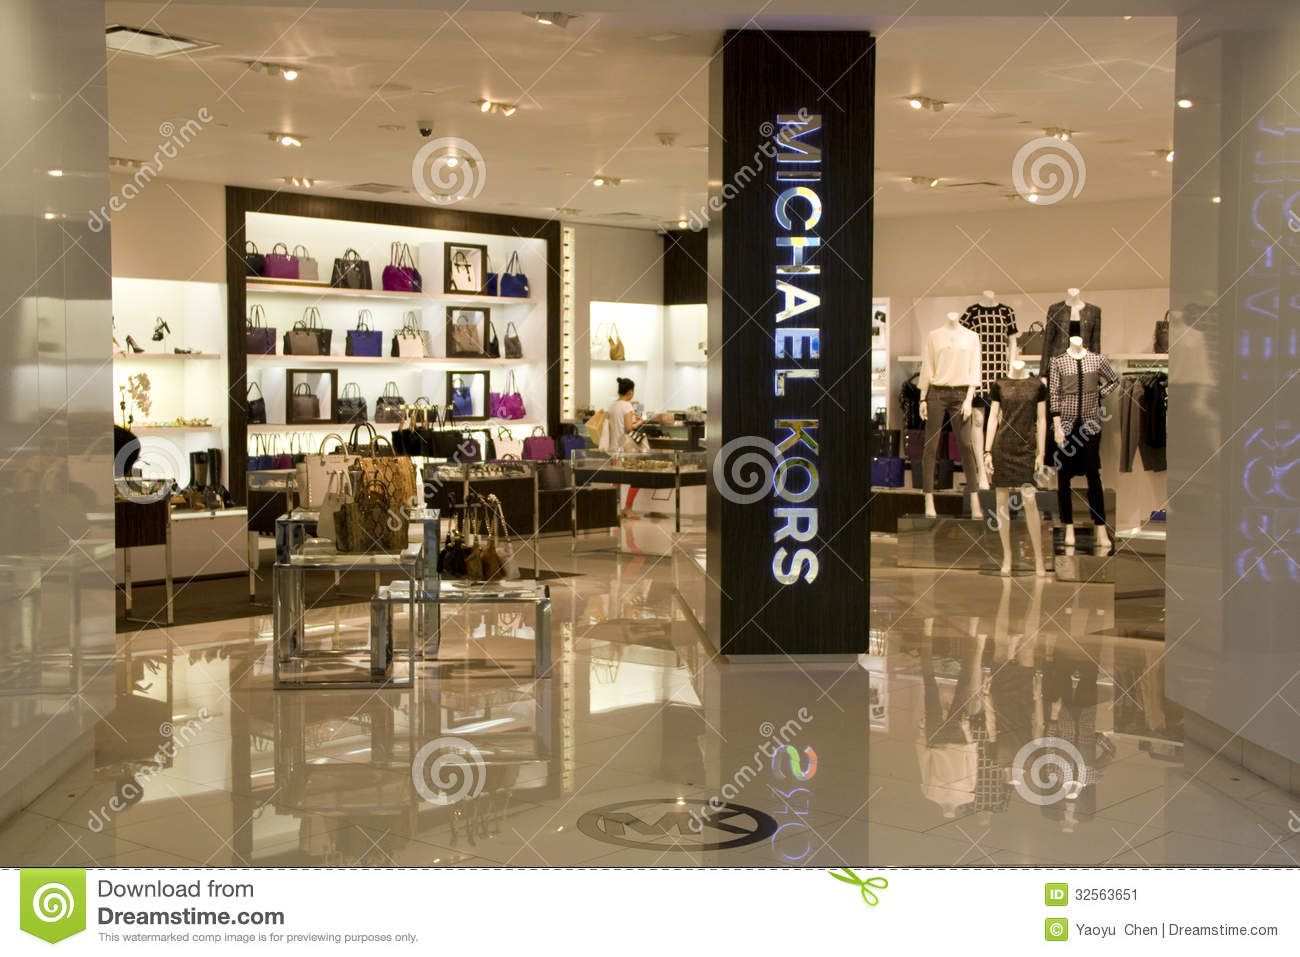 luxury store was selling upscale purses, shoes and clothing at